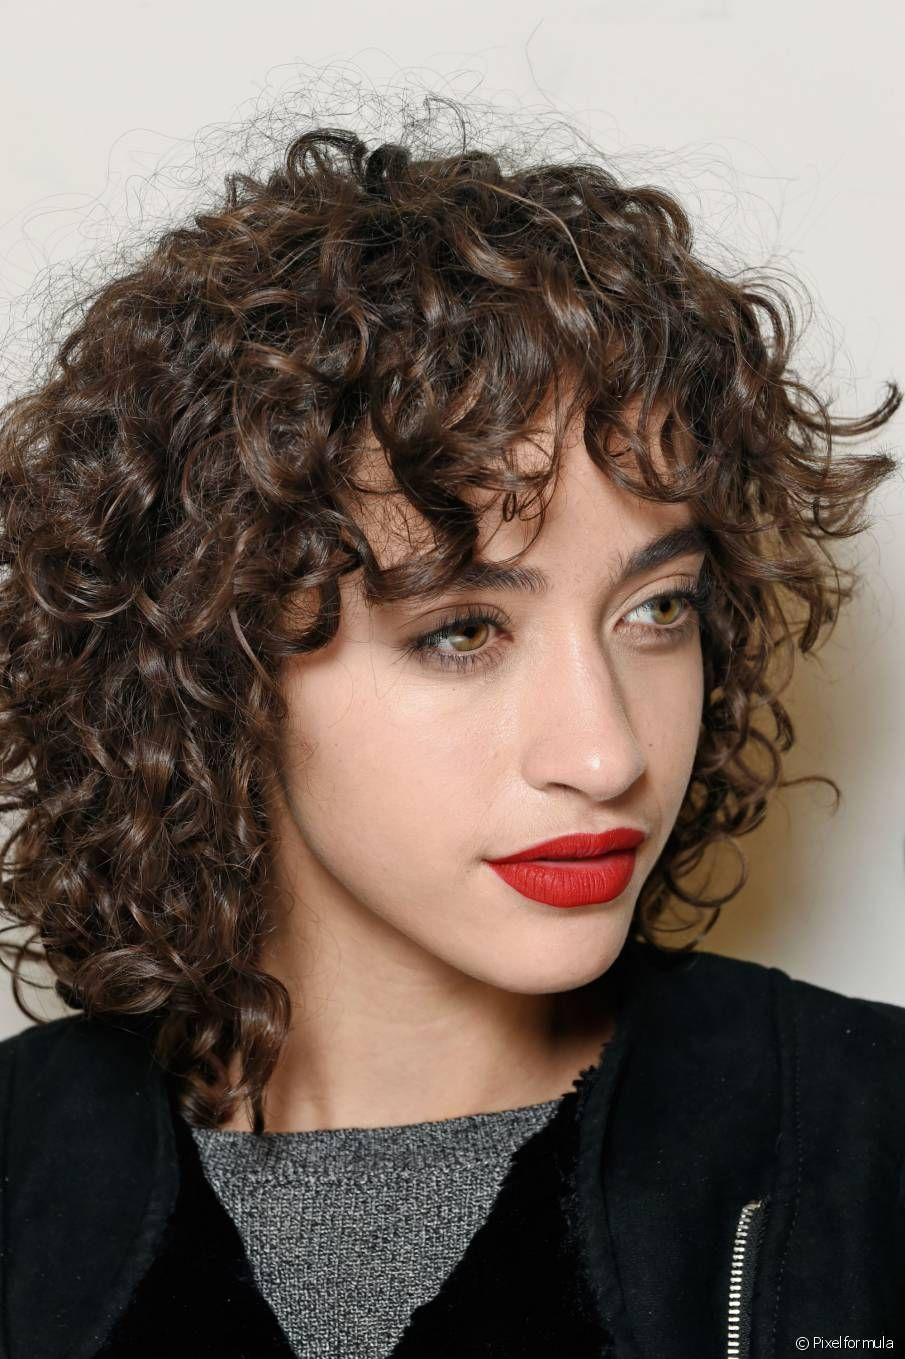 4077 Curly Bangs 905x0 2 Jpg 905 1 359 Pixels Curly Hair With